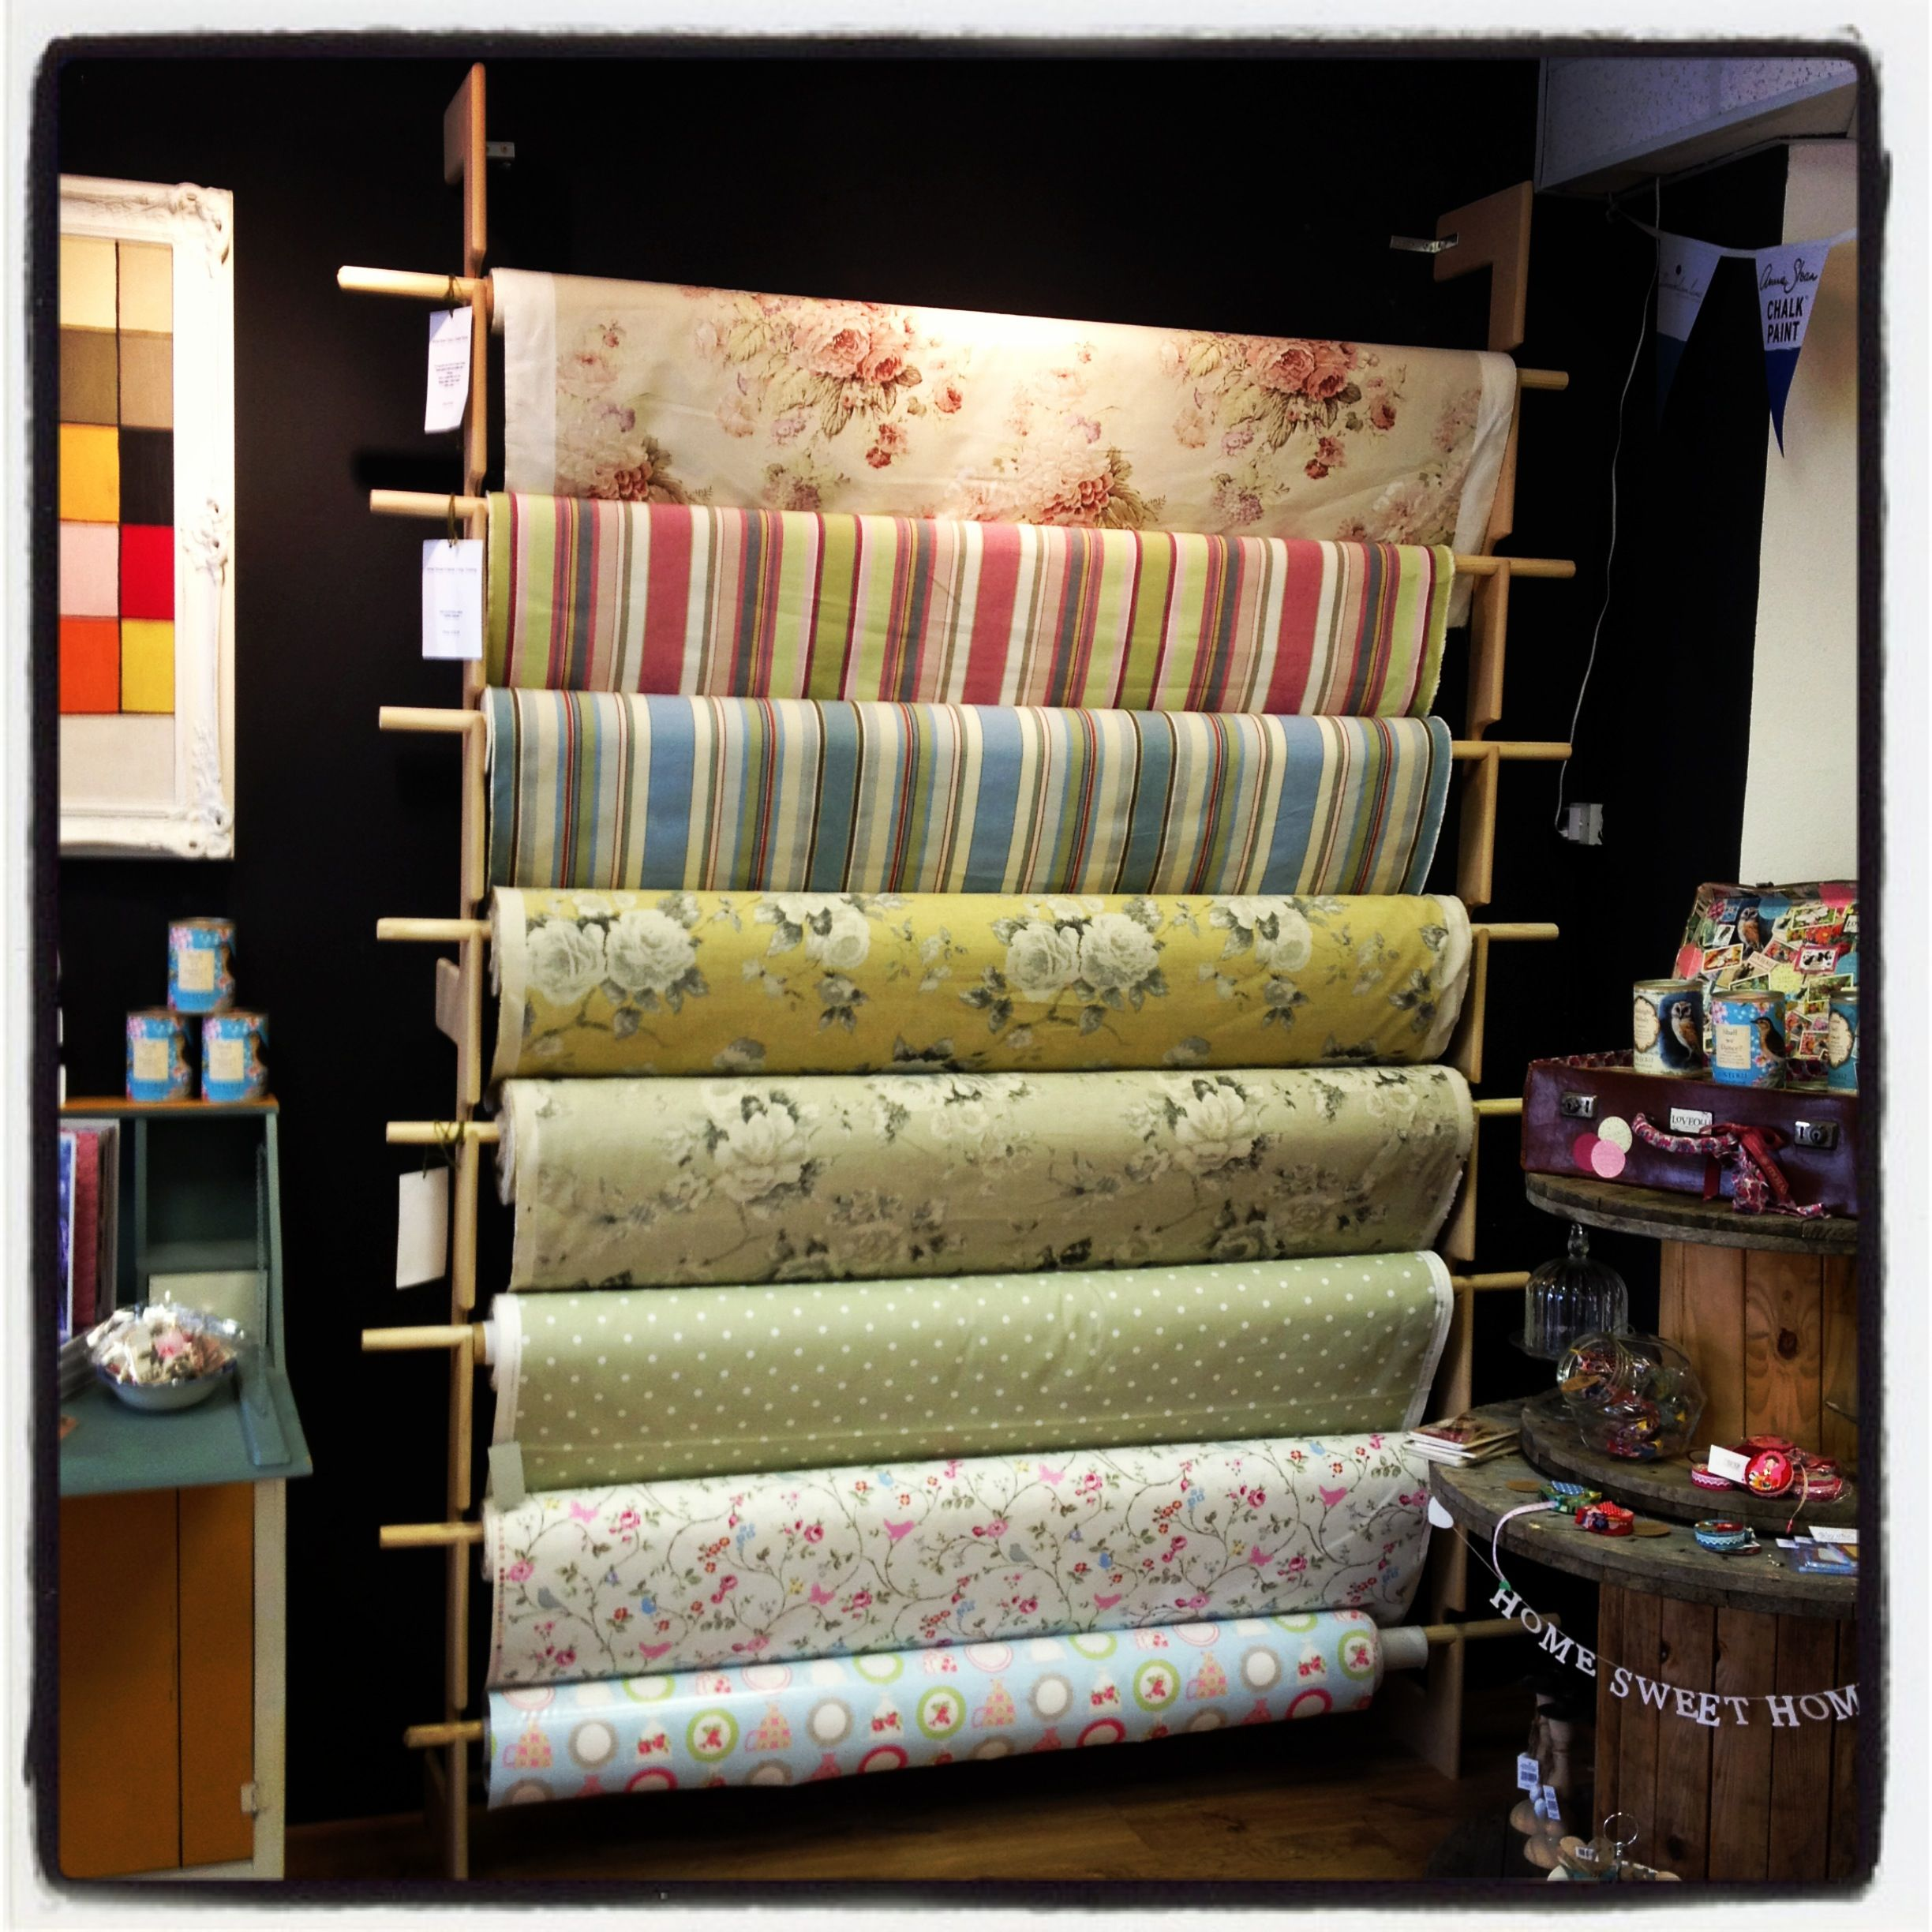 Lovely Fabric Display In My New Shop Fabric Display Retail Display Interior Display